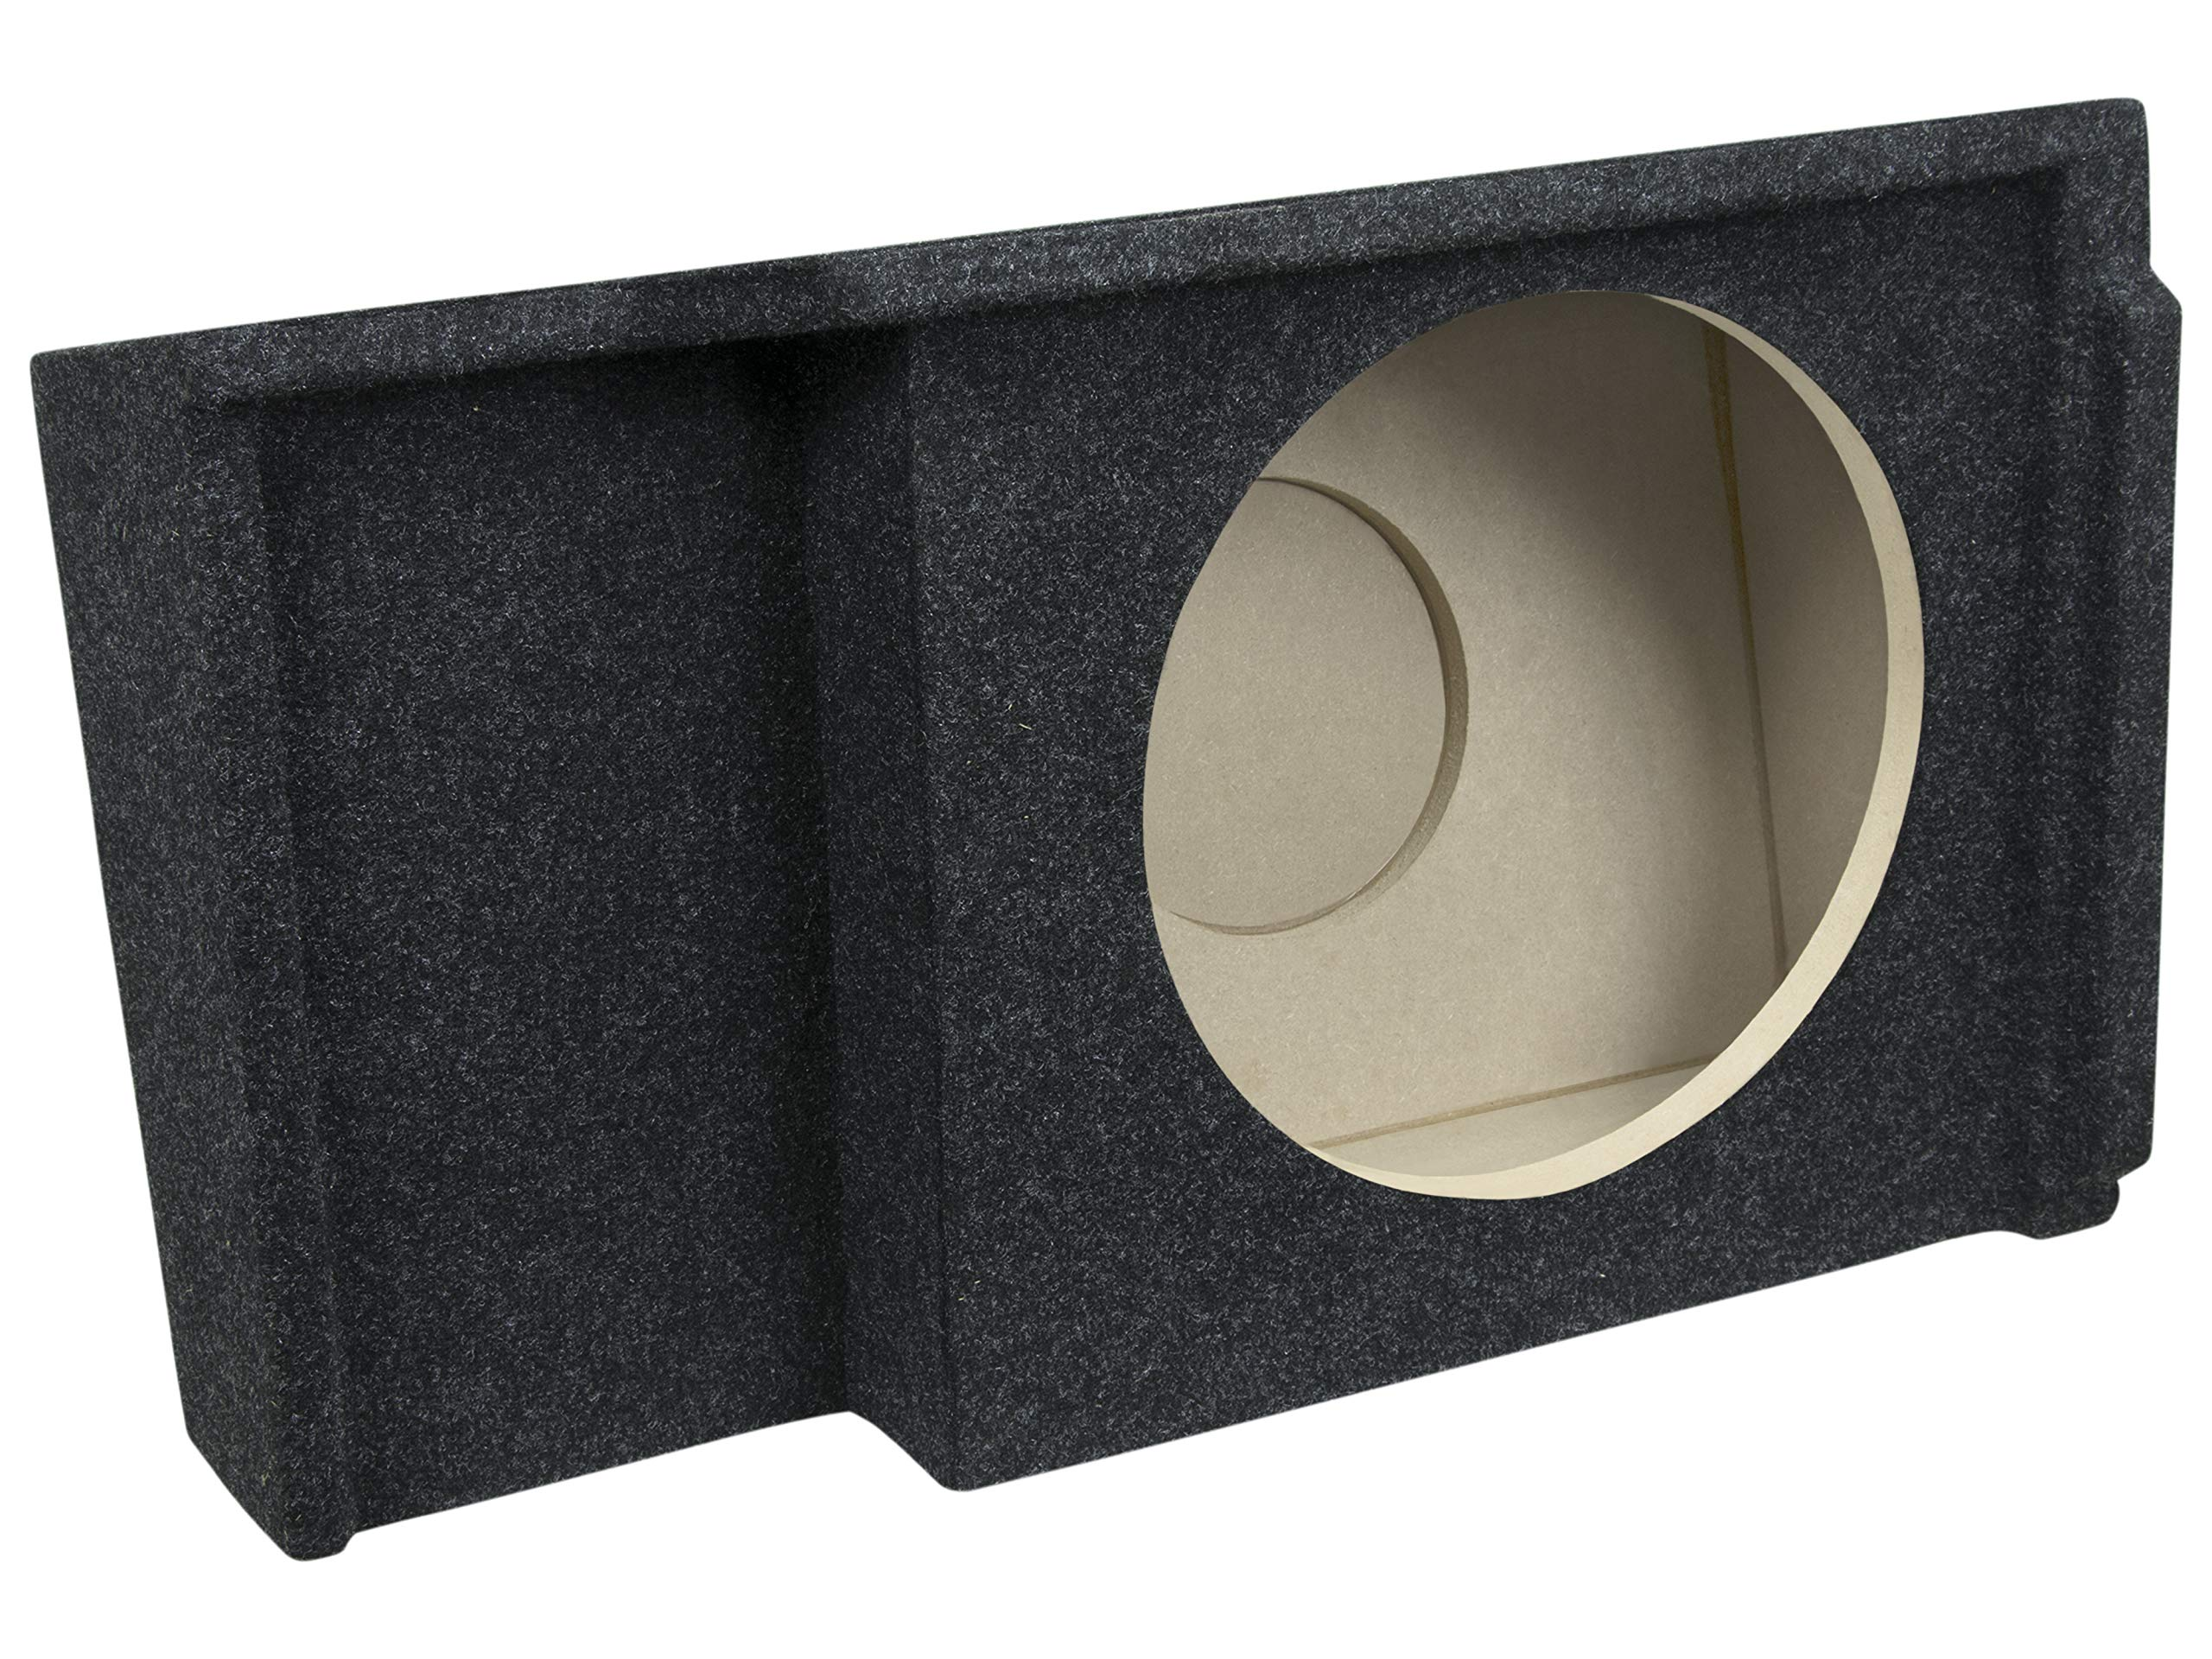 Bbox A151-12CP Single 12'' Sealed Carpeted Subwoofer Enclosure - Fits 1999-2007 Chevrolet/GMC Silverado/Sierra Extended Cab